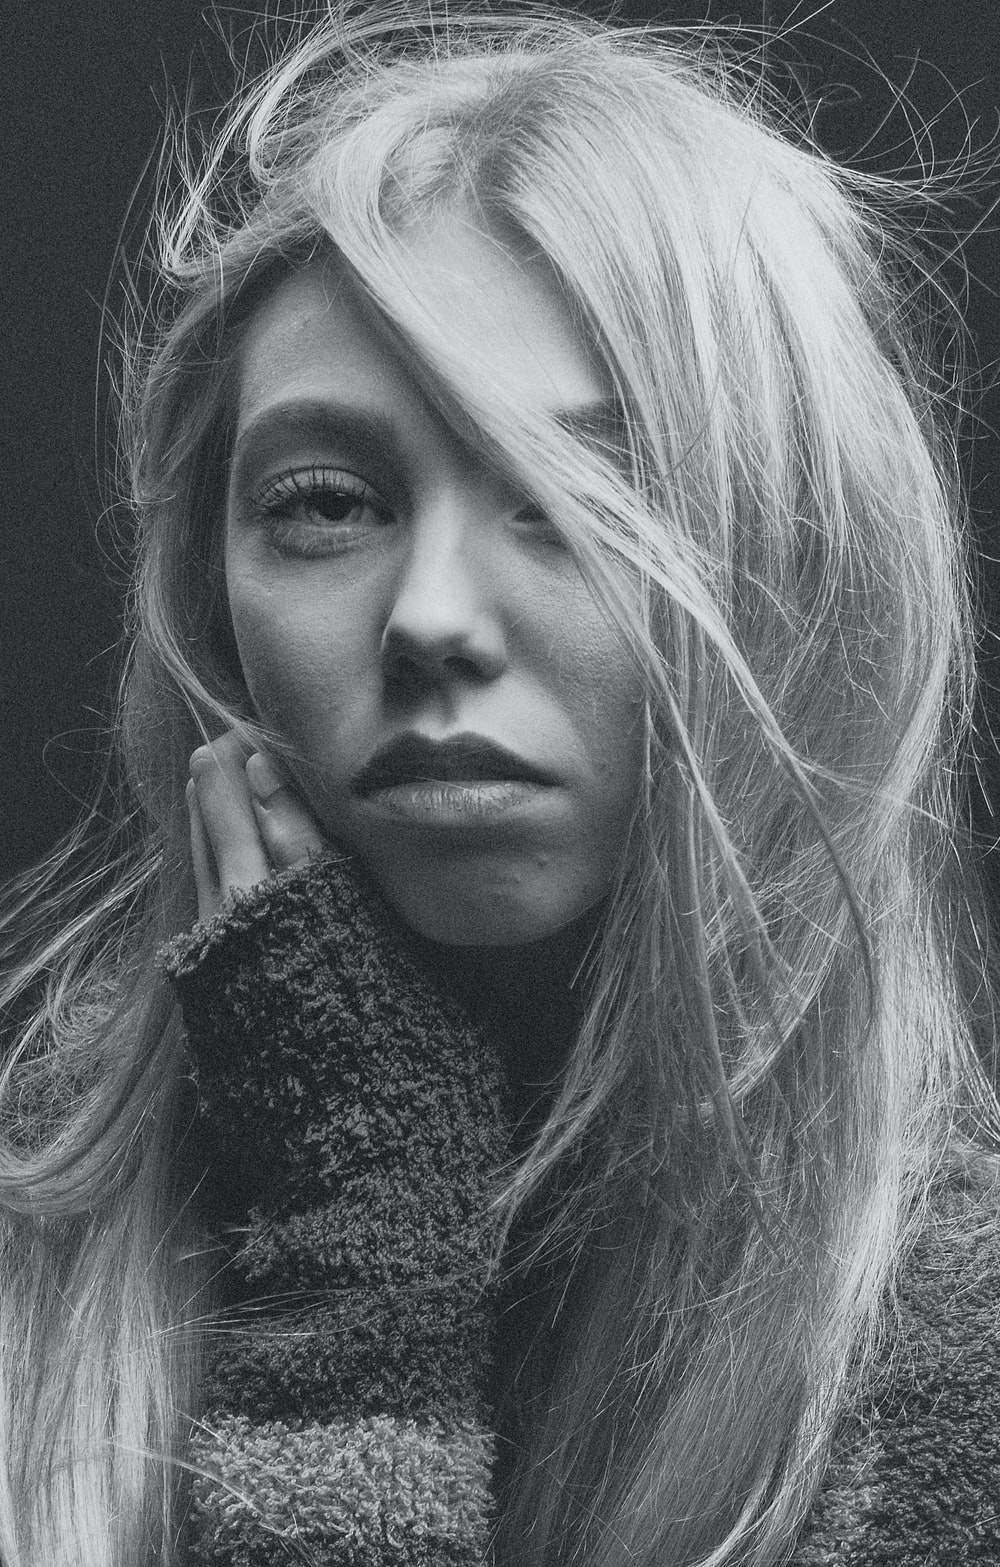 woman with blonde hair wearing black and white scarf